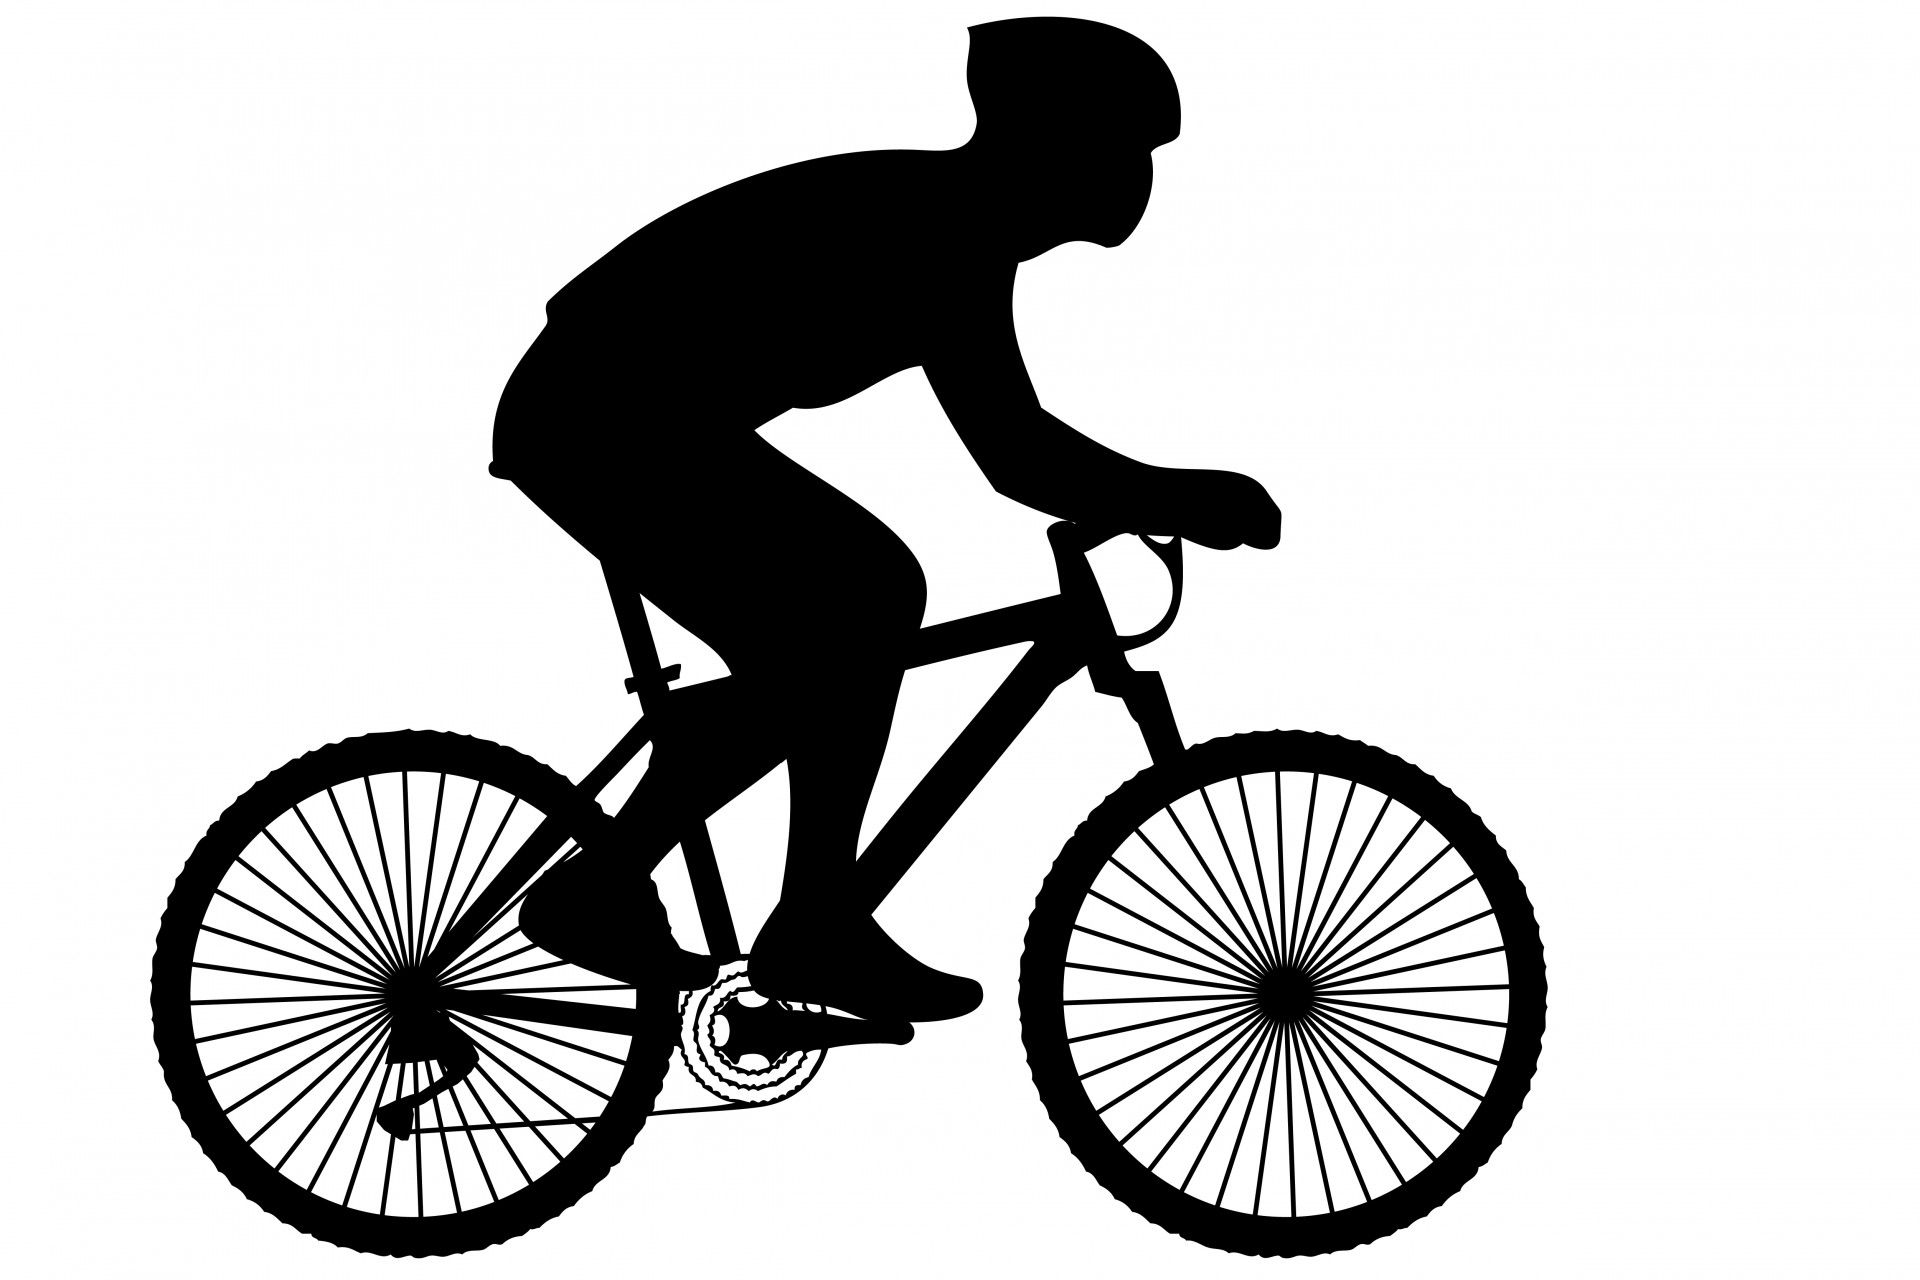 Bicycle clipart silhouette.